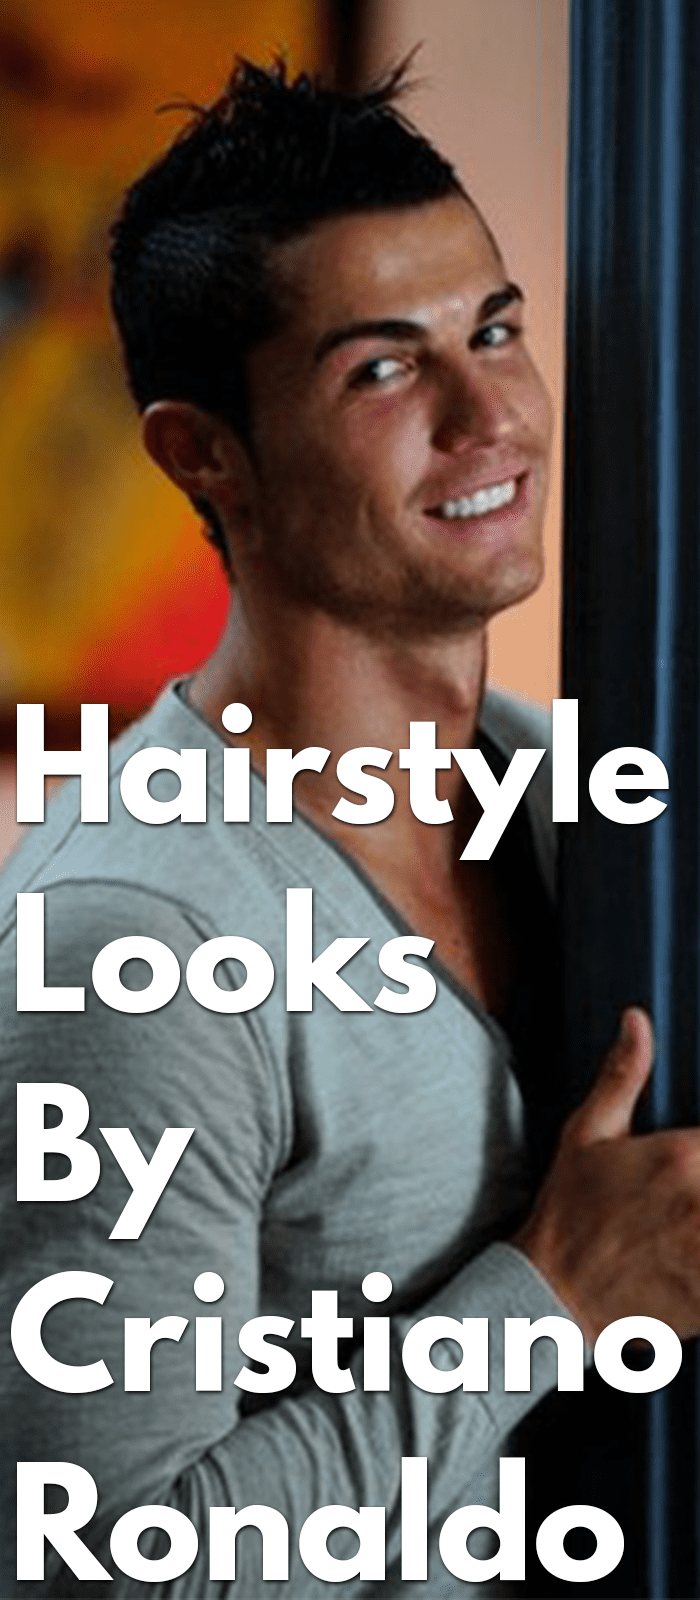 Hairstyle-Looks-By-Cristiano-Ronaldo.